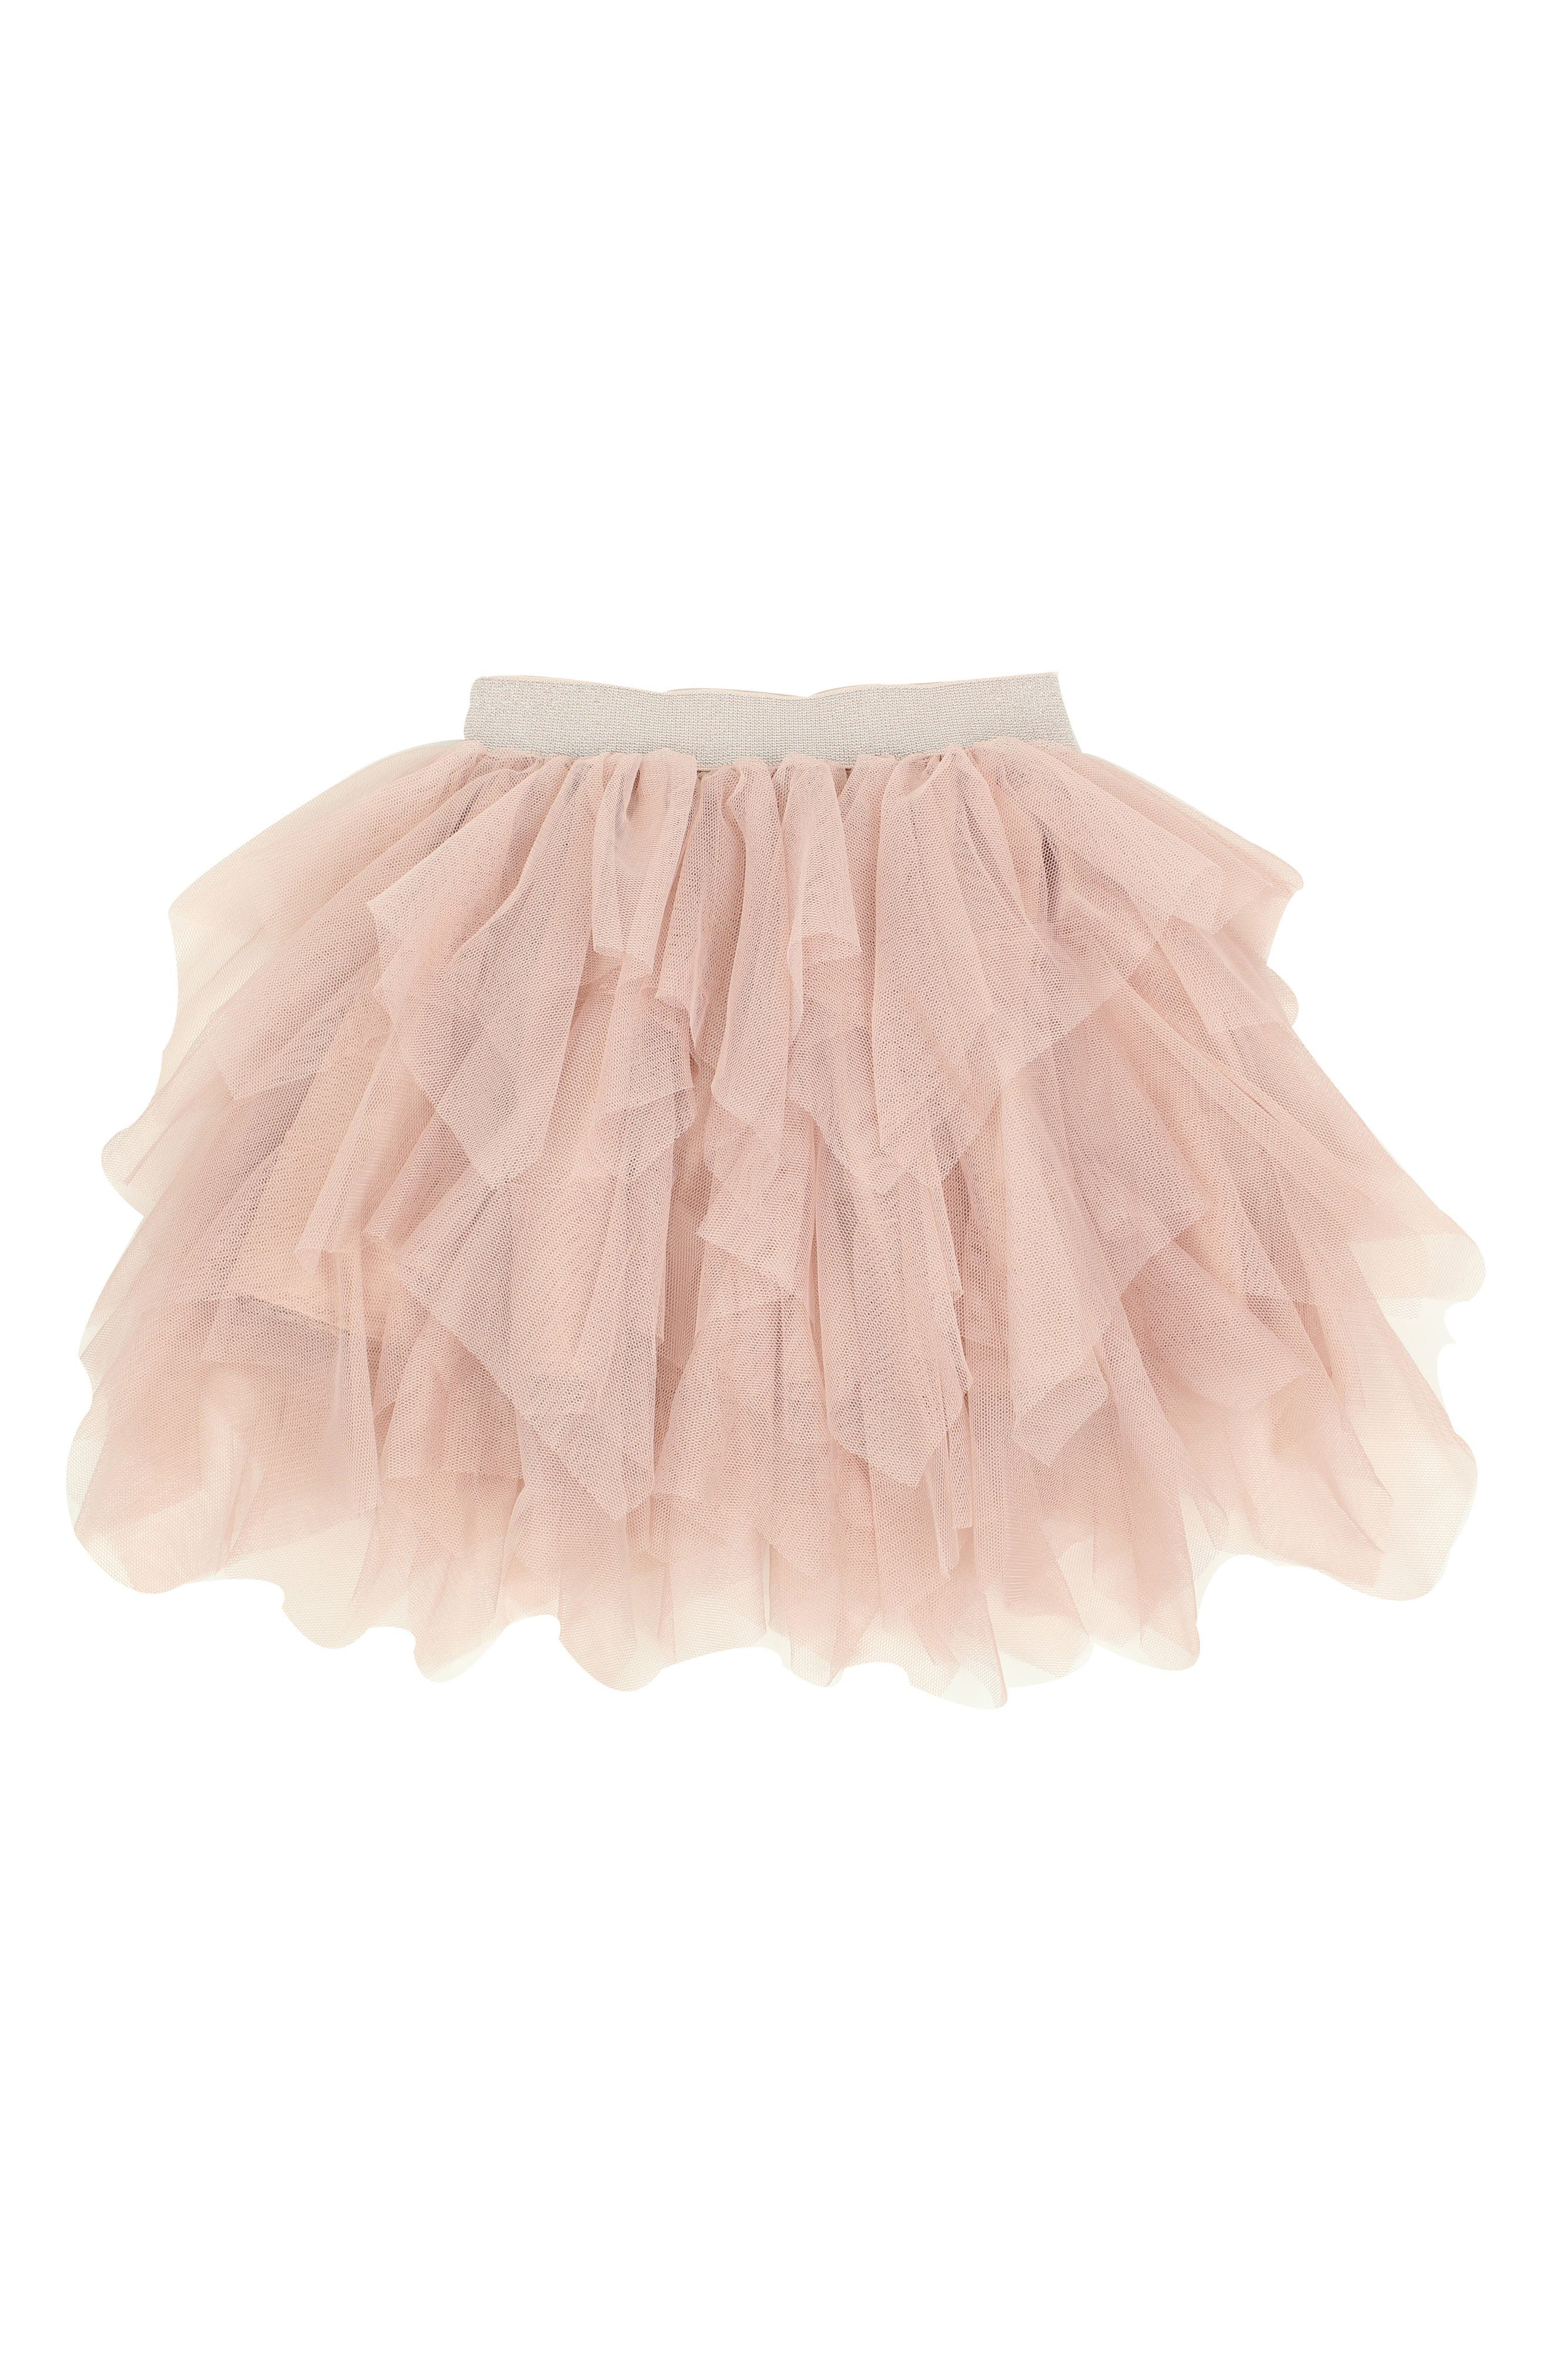 Tiered Tulle Skirt,                         Main,                         color, Peach